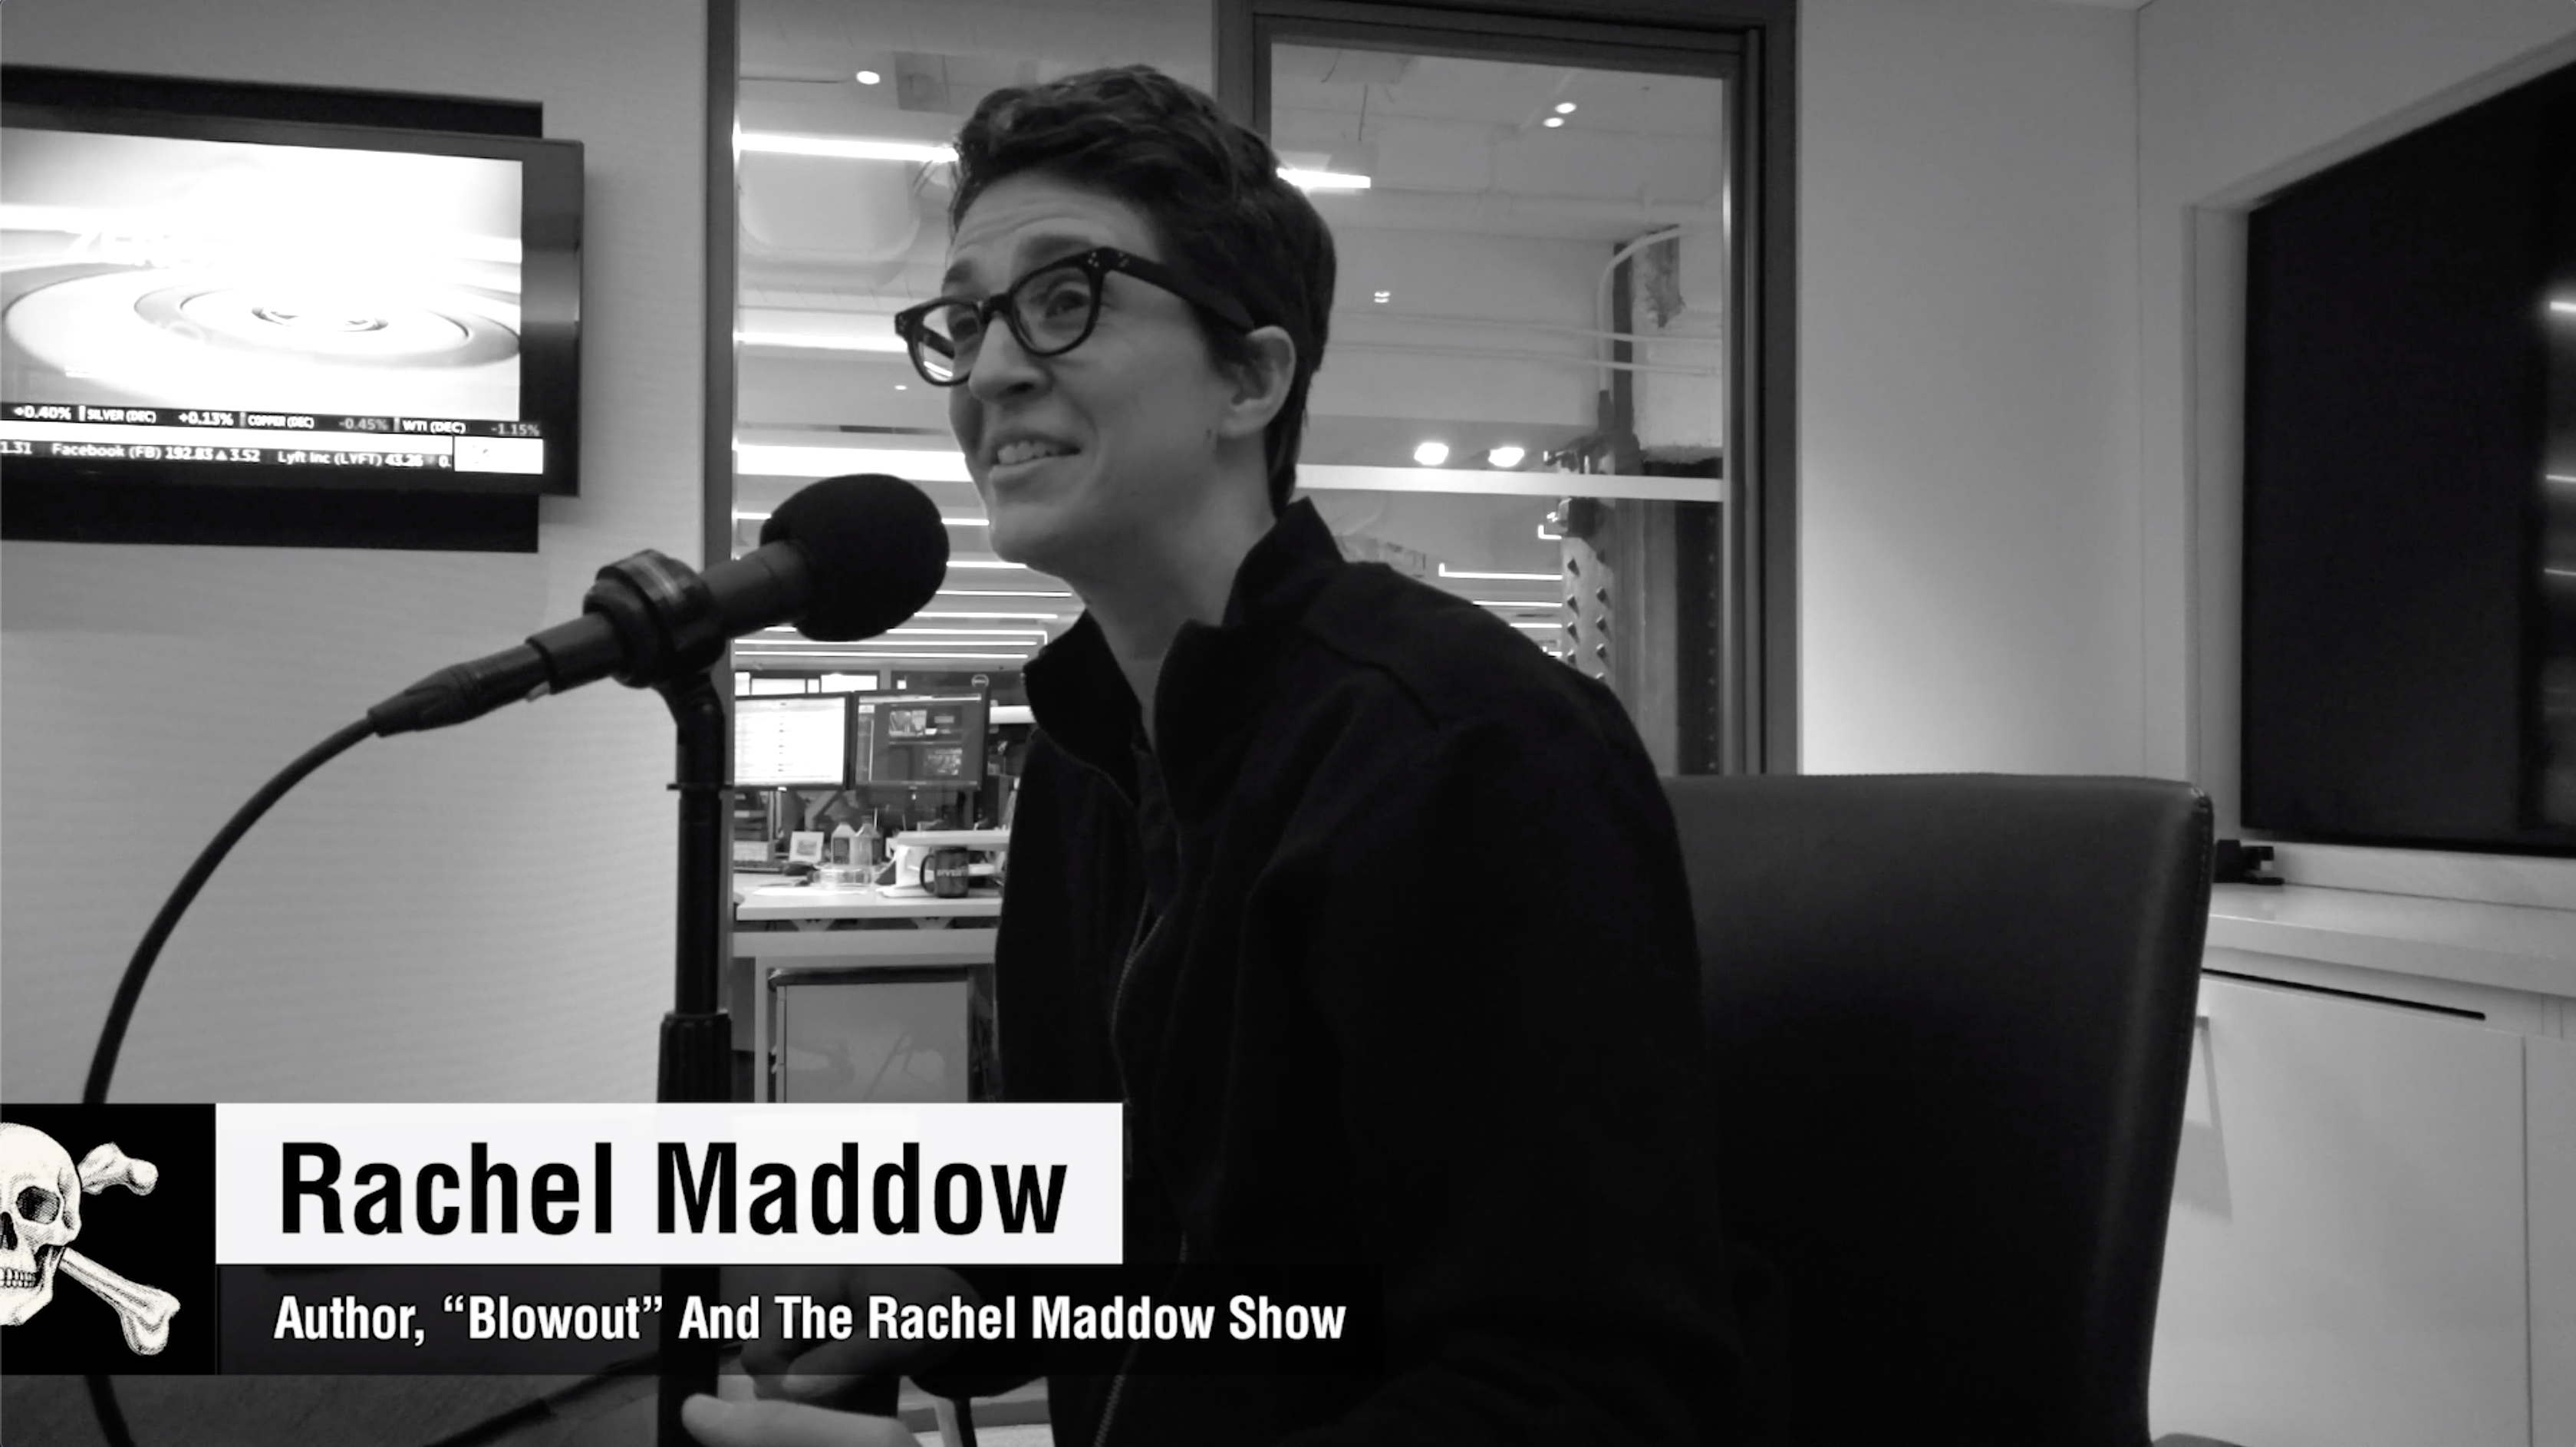 Rachel Maddow on President Trump: 'He did ask China to investigate Biden too'